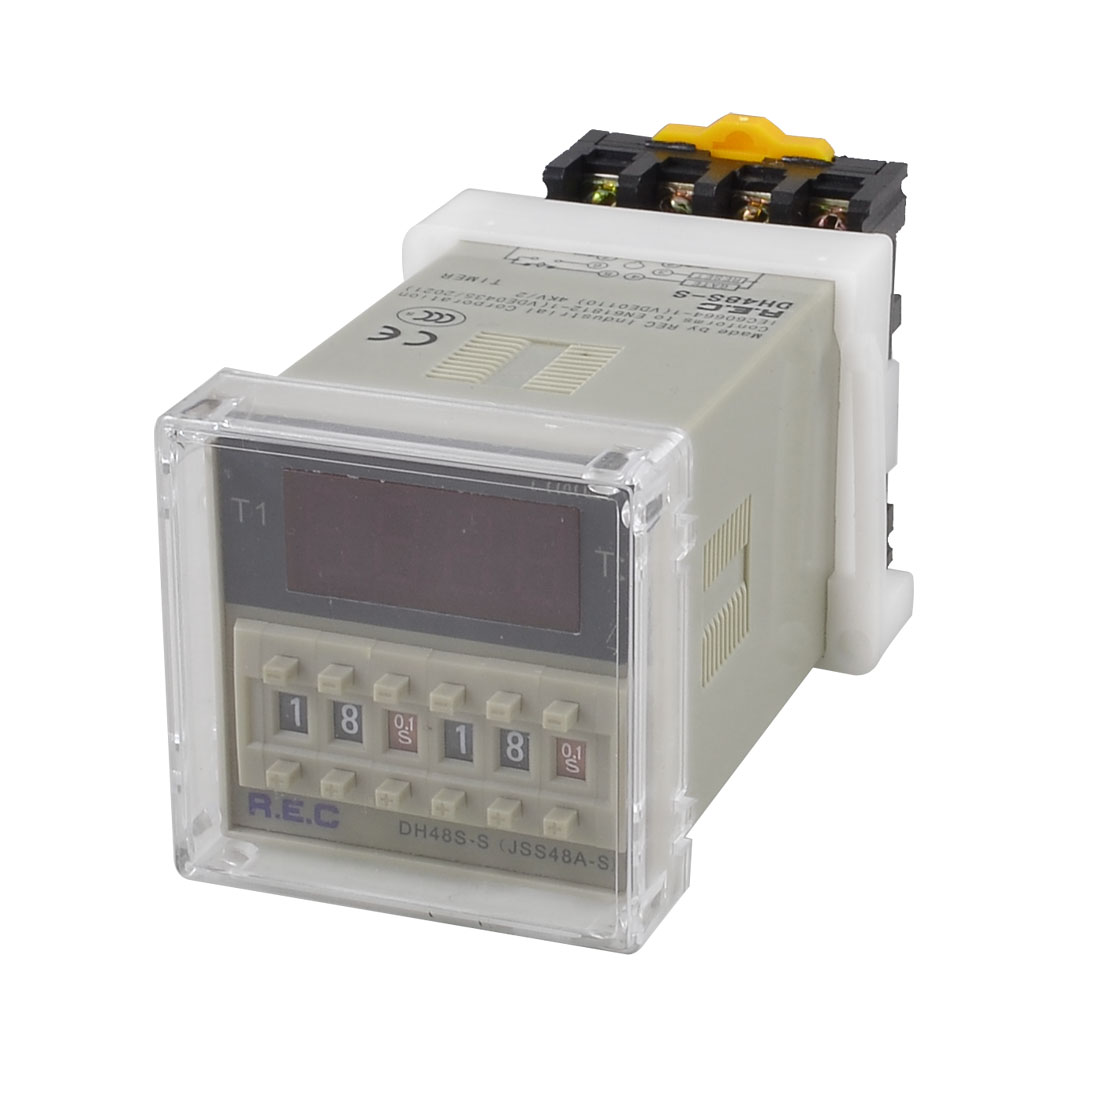 DH48S-S Digital Timer Time Delay Relay 0.01S - 99H 99M 8 Pins w Socket